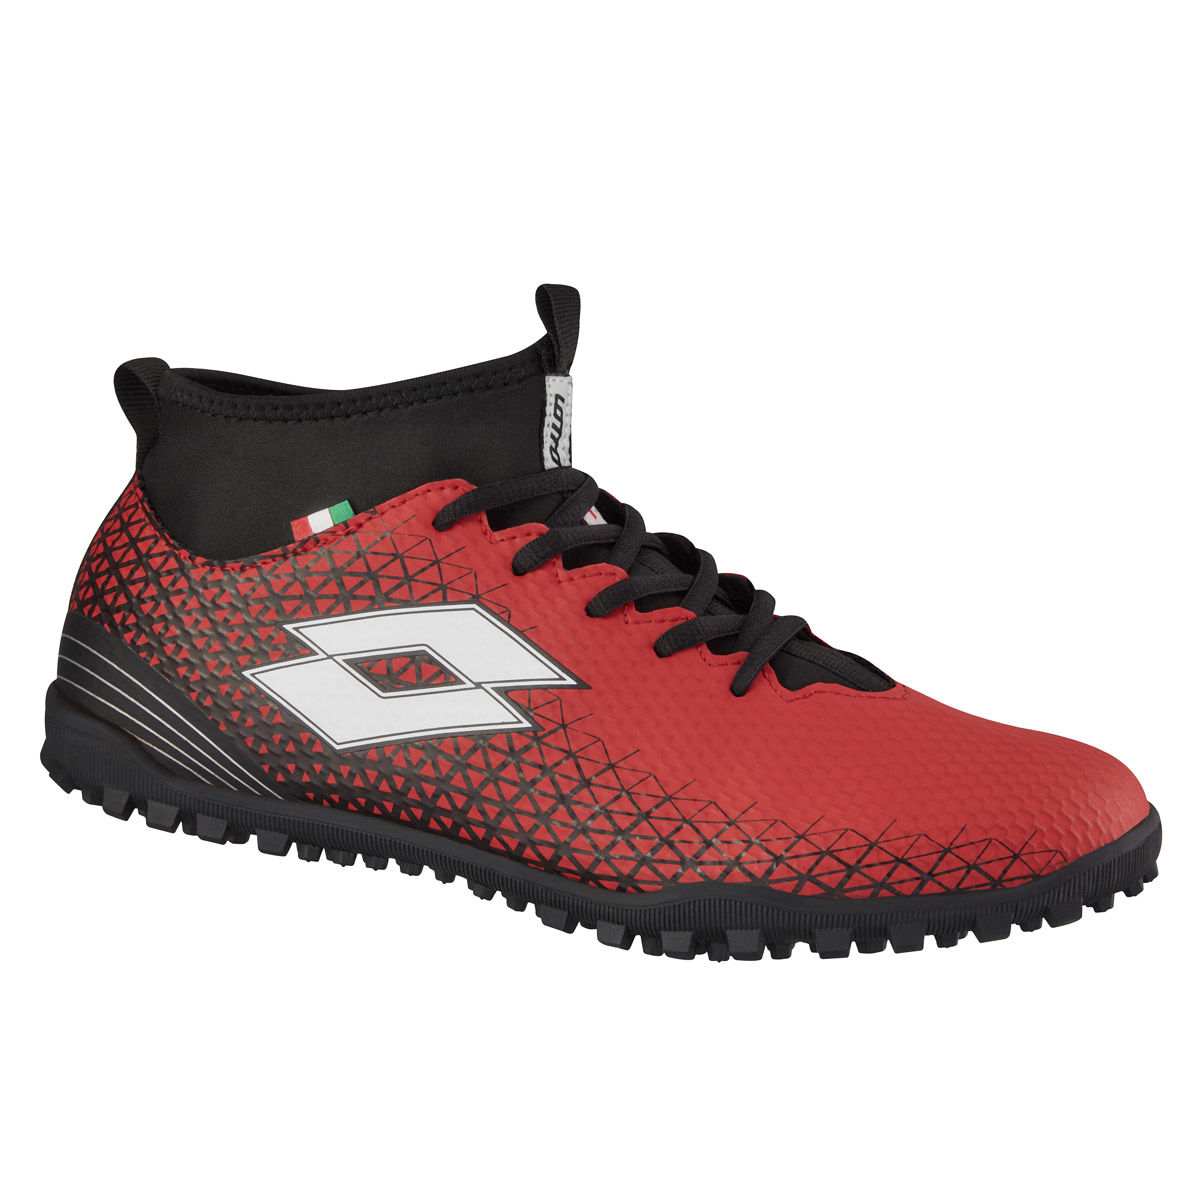 Lotto Evolve Kids Turf Soccer Cleat